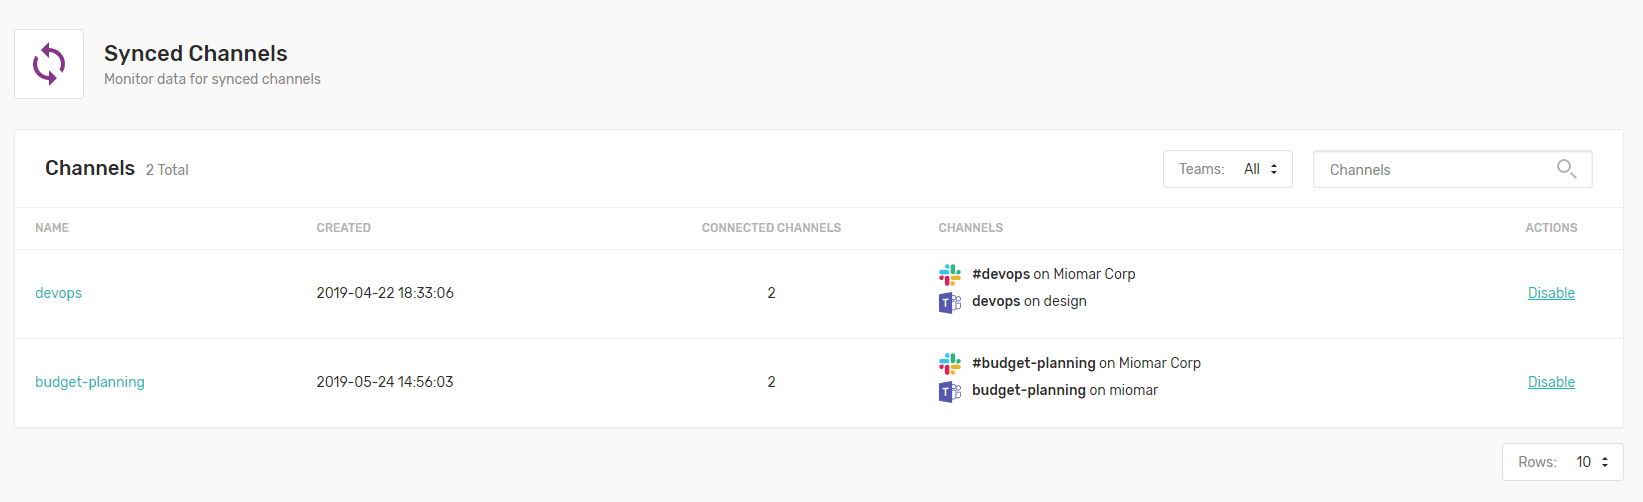 View your synced channels between Slack and Microsoft Teams